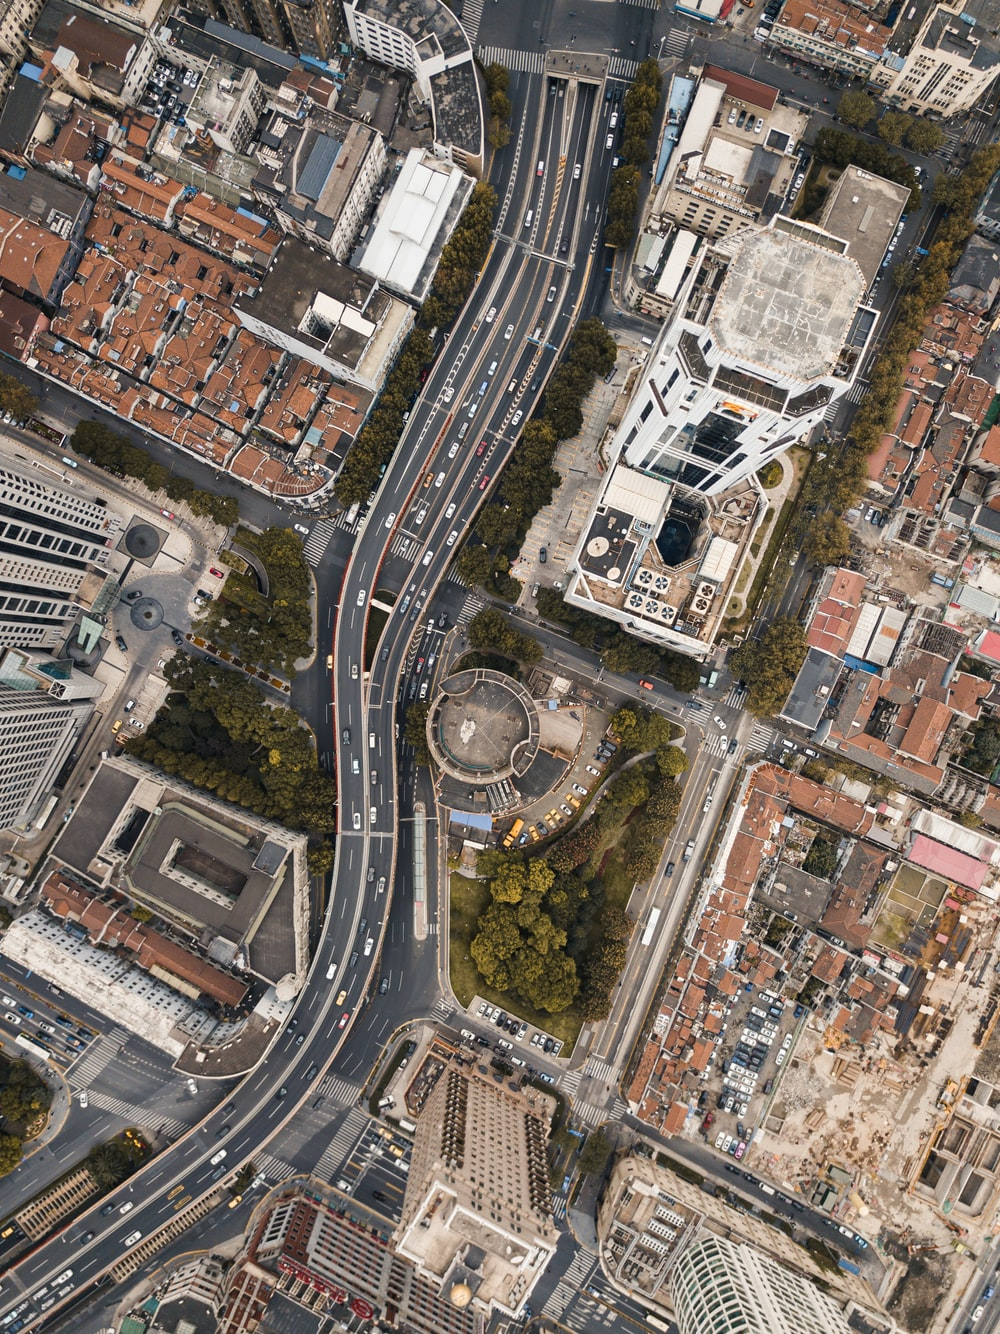 aerial photography of houses and city buildings